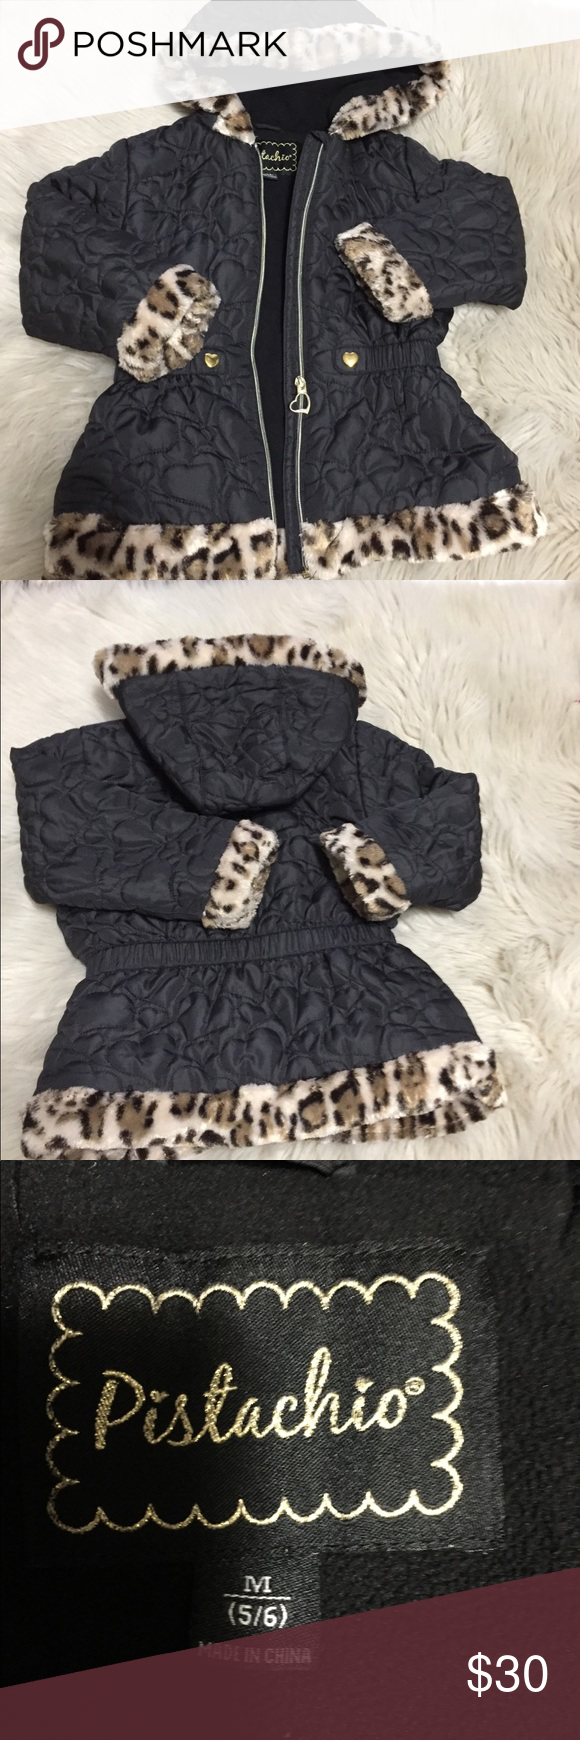 Faux Fur Trimmed Girls Coat Quilted black with any male print faux fur trim around hood, sleeves, hem. New condition with working zipper, no snags, tears, and CLEAN! Pistachio Brand, in black, selling for $70 on Amazon. Pistachio Jackets & Coats Puffers